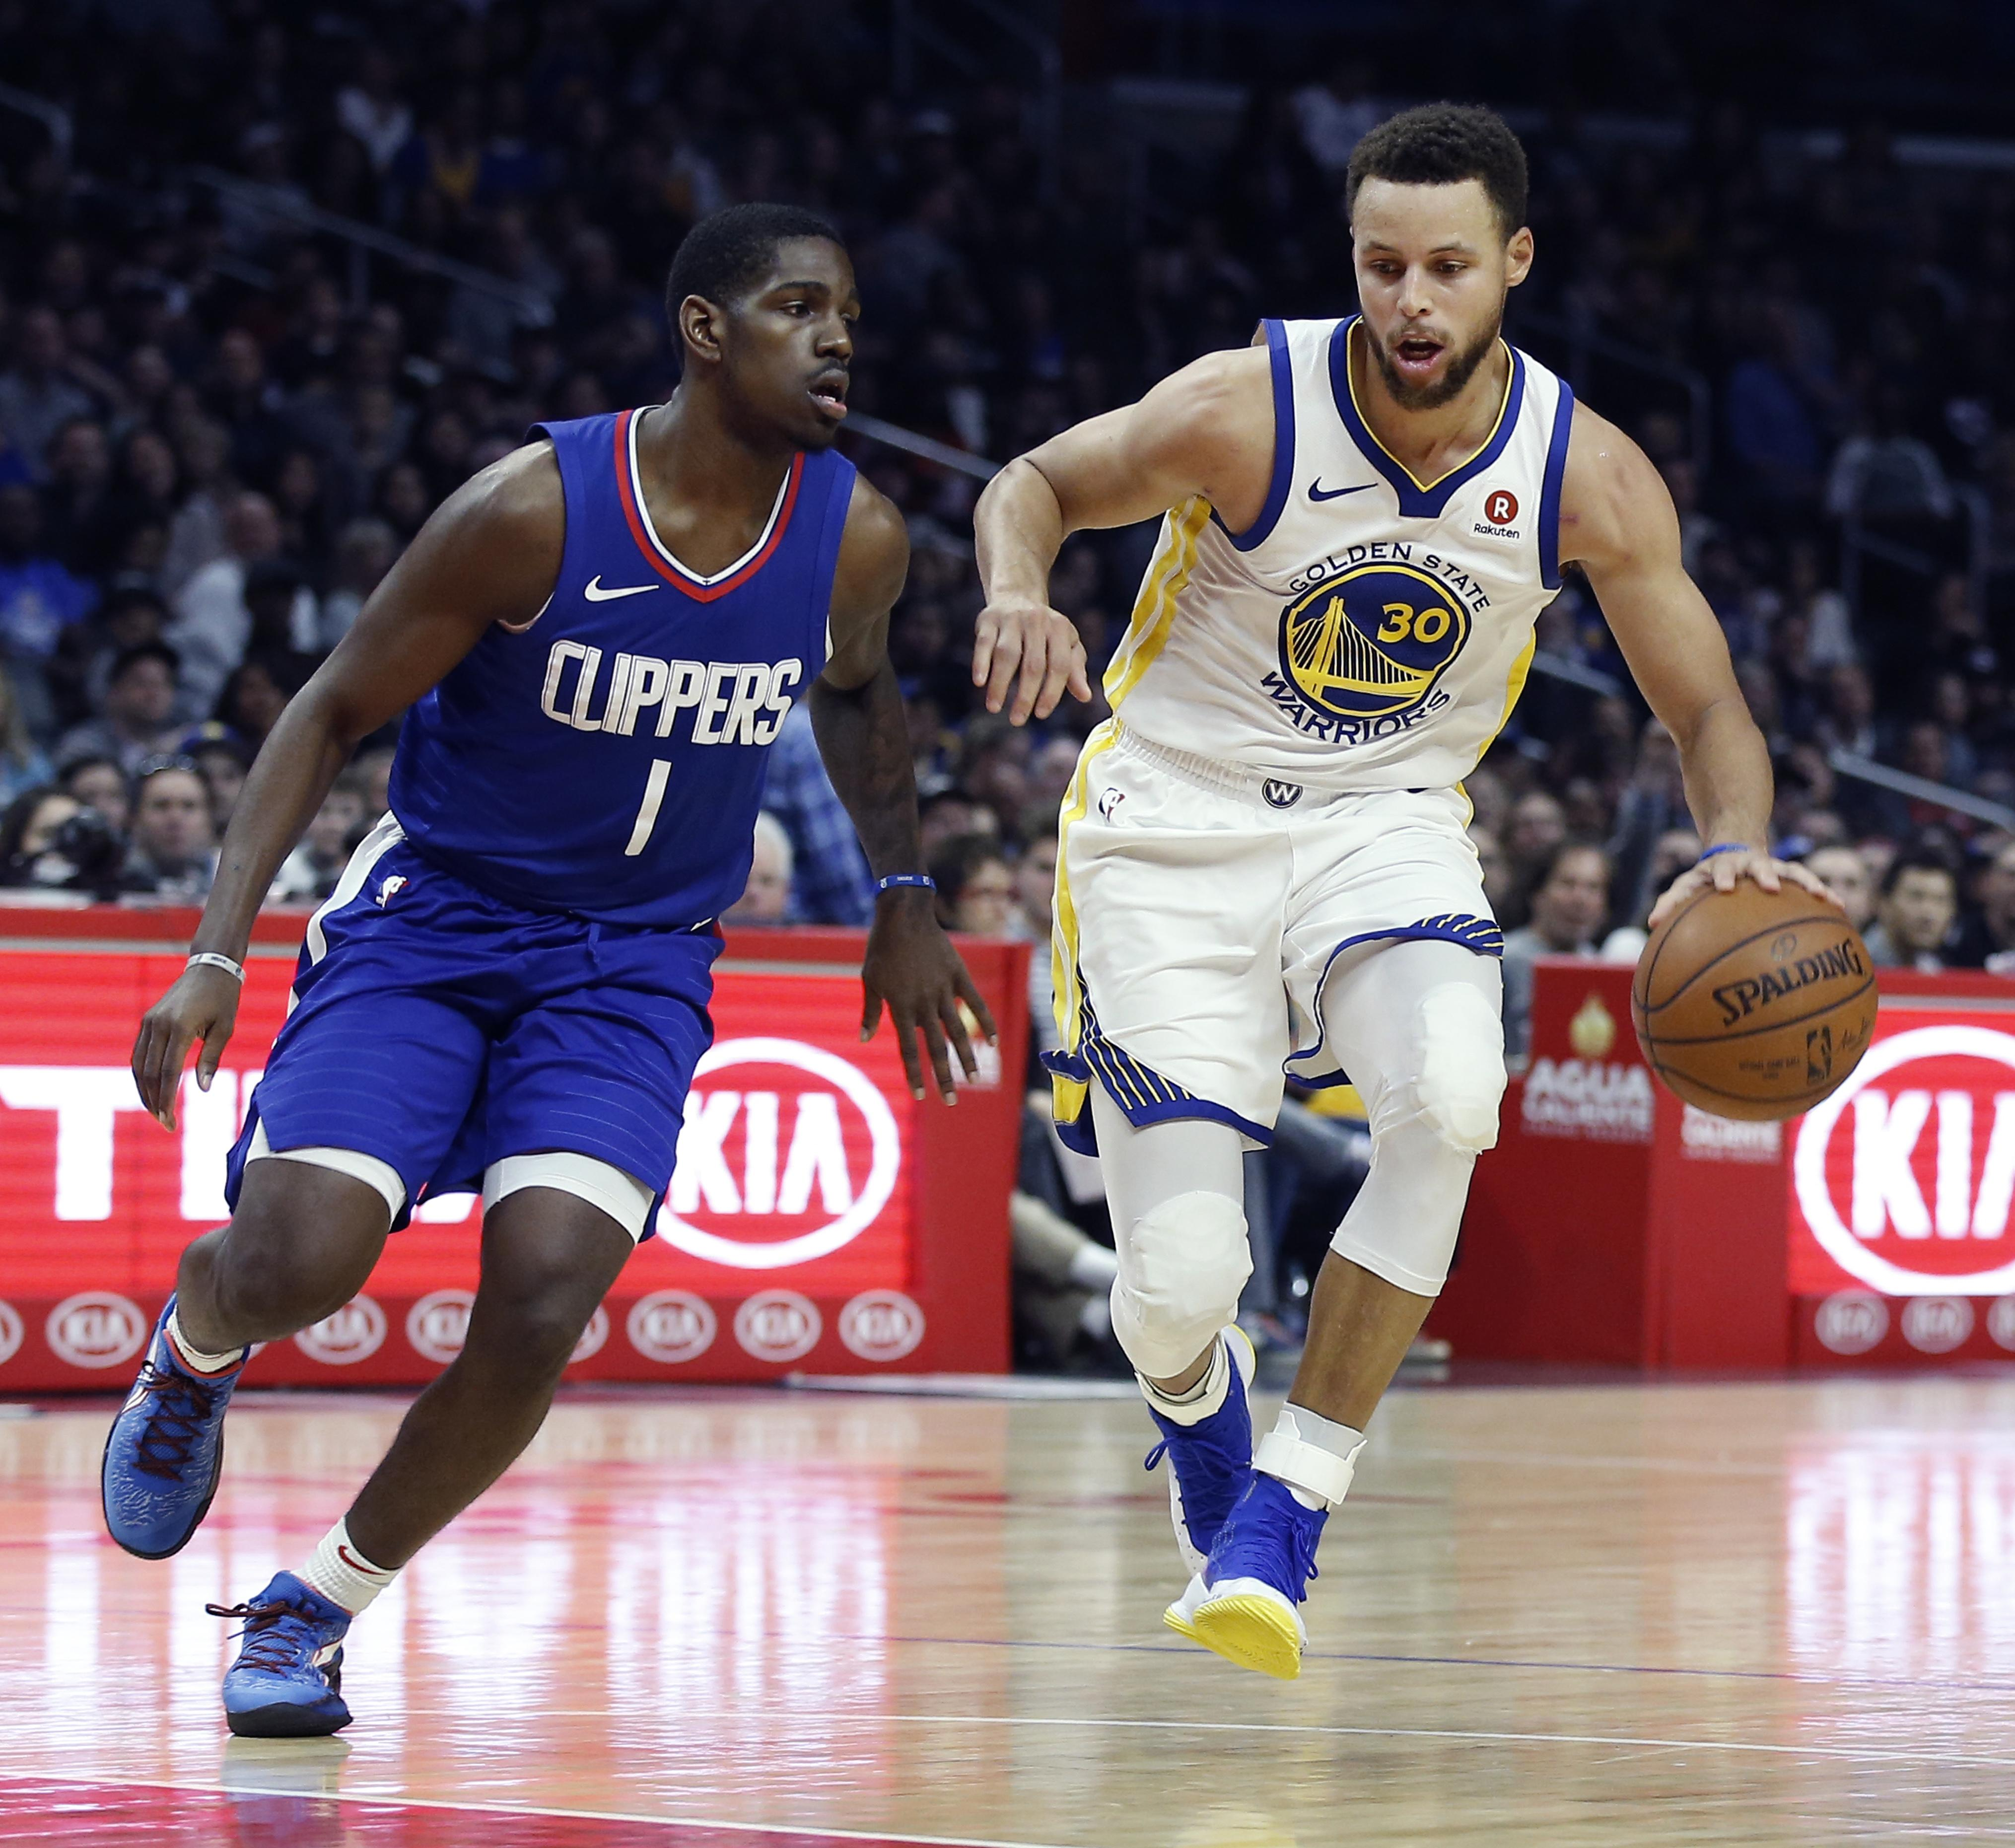 Golden State Warriors Record Without Steph Curry: NBA Capsules: Curry Scores Season-high 45 Points, Warriors